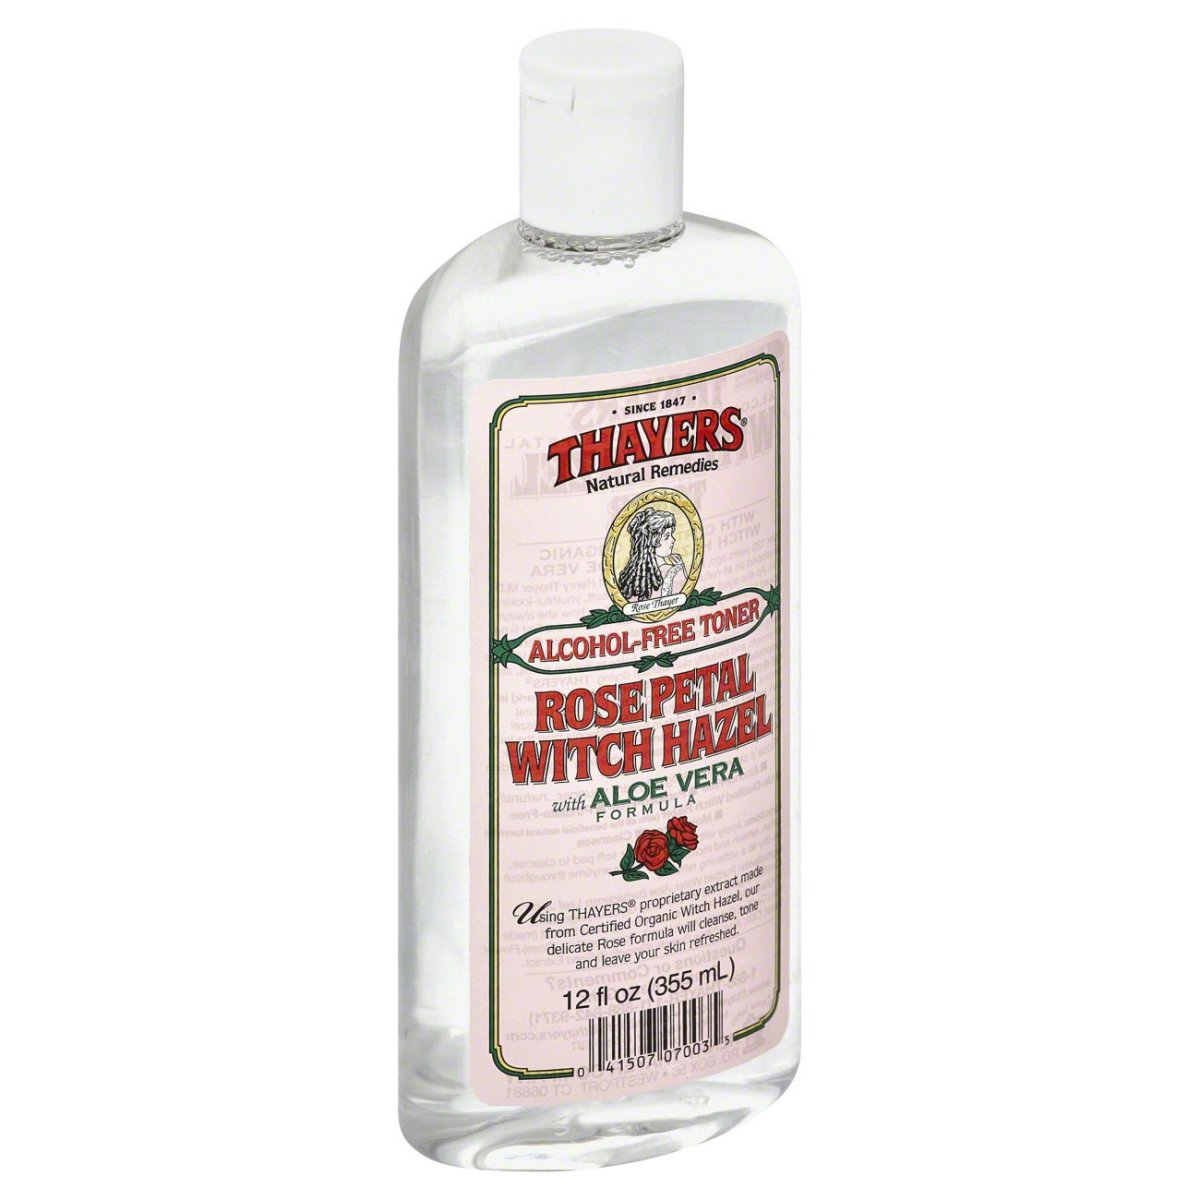 Witch hazel can help soothe soreness associated with ingrown hairs.